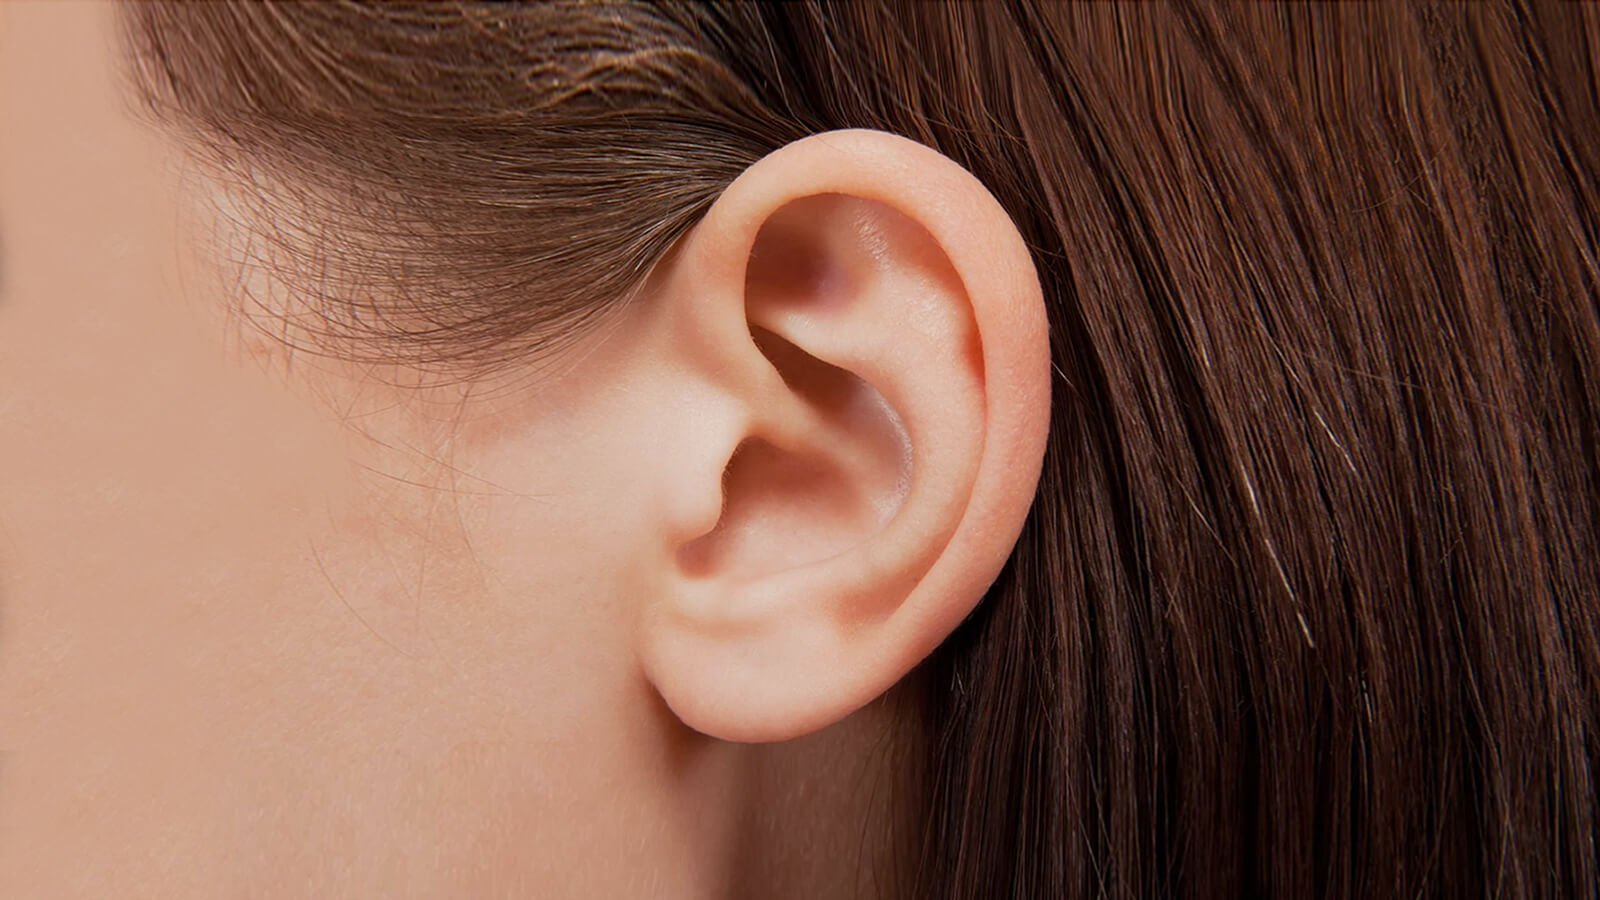 Auriculotherapy 101: Basics of Ear Acupressure Therapy